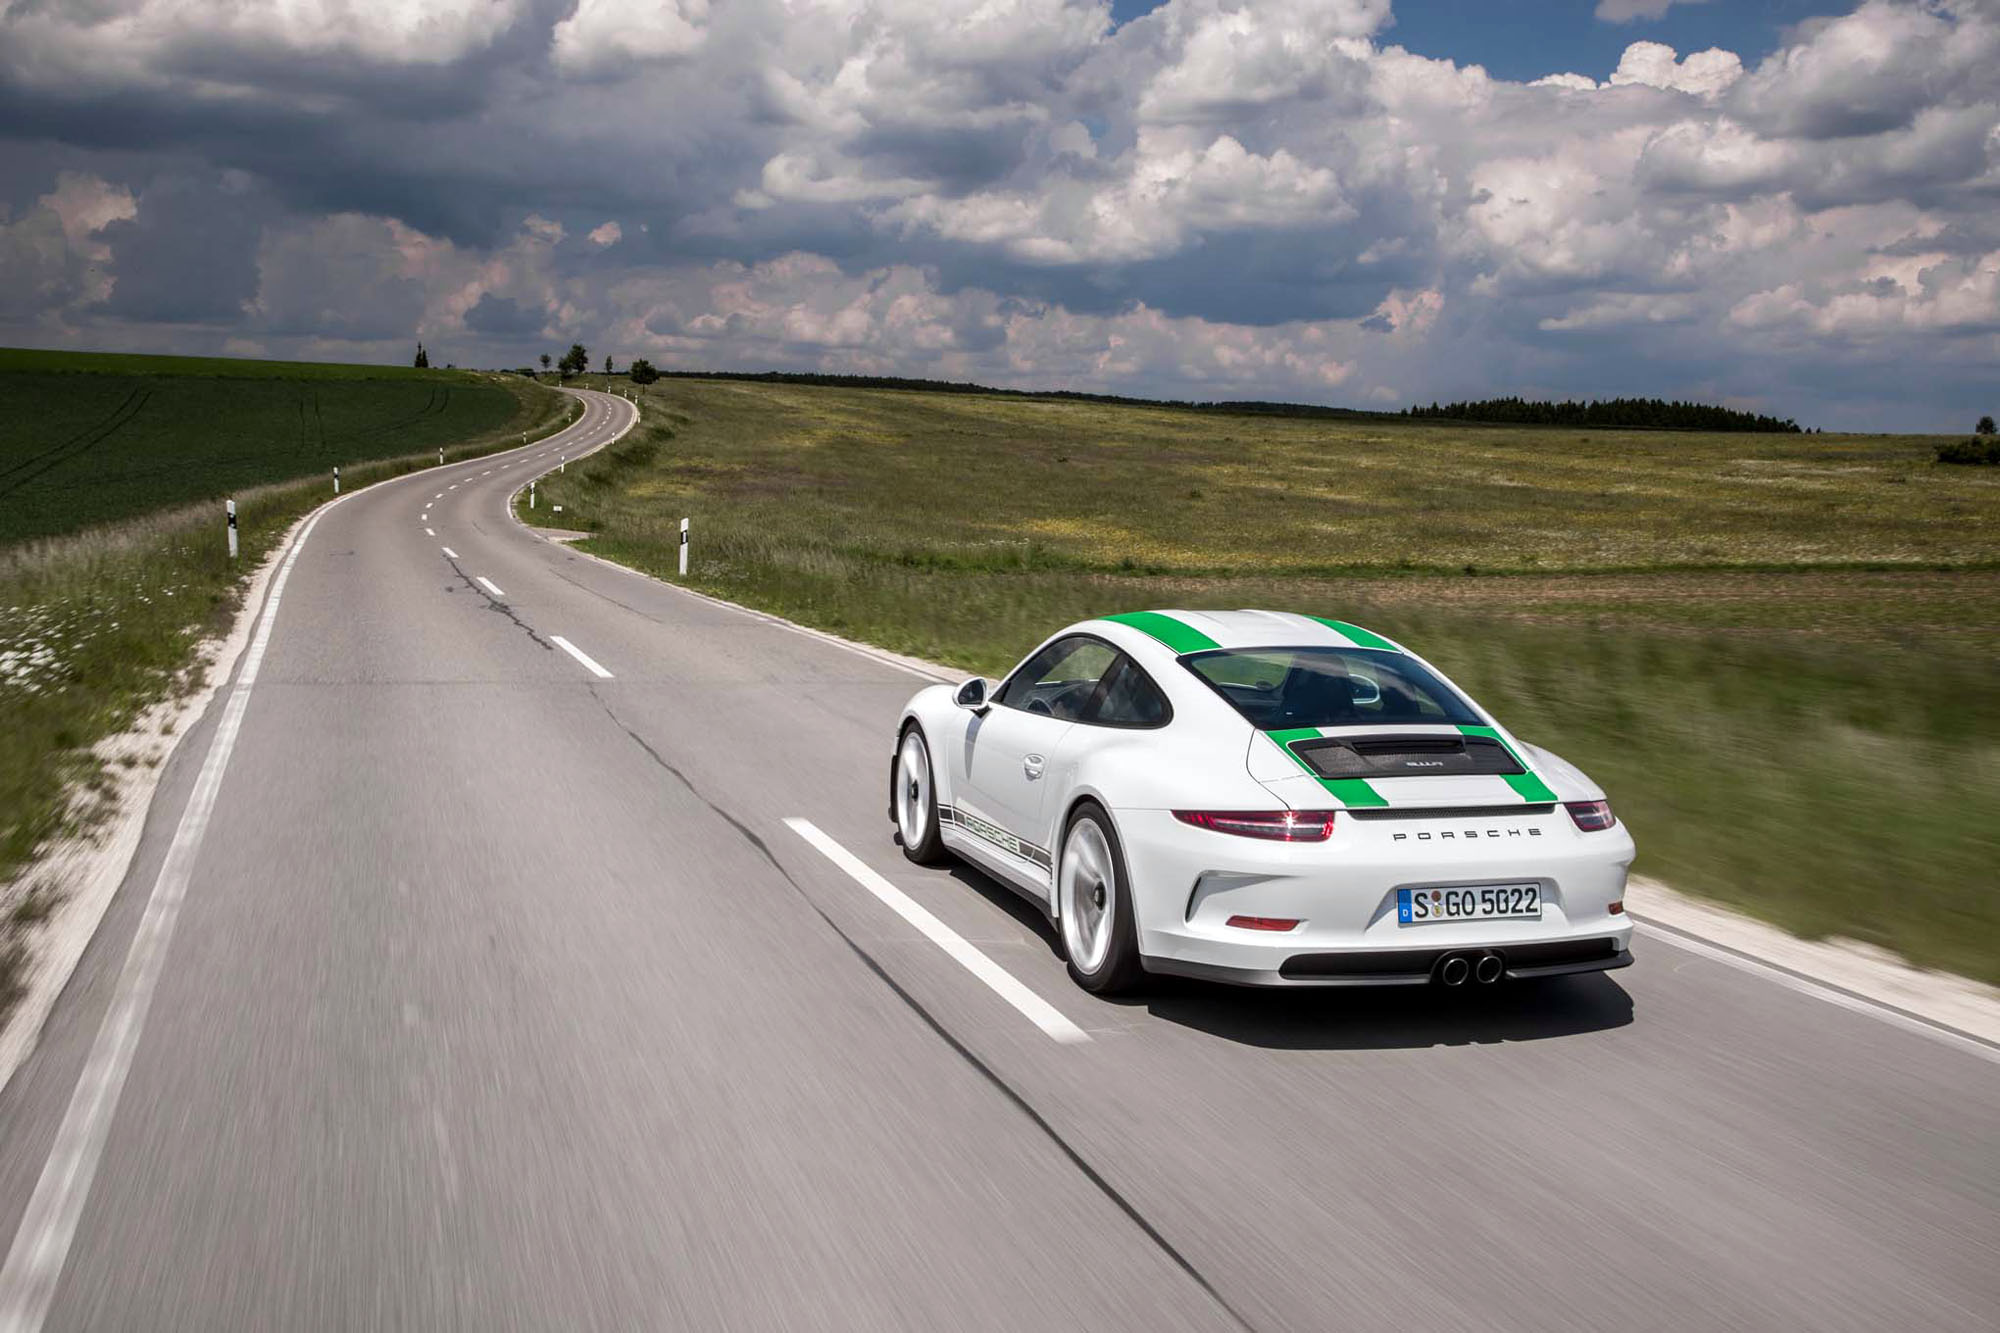 2016 Porsche 911 R Widescreen Wallpaper HD Car Wallpapers 2000x1333